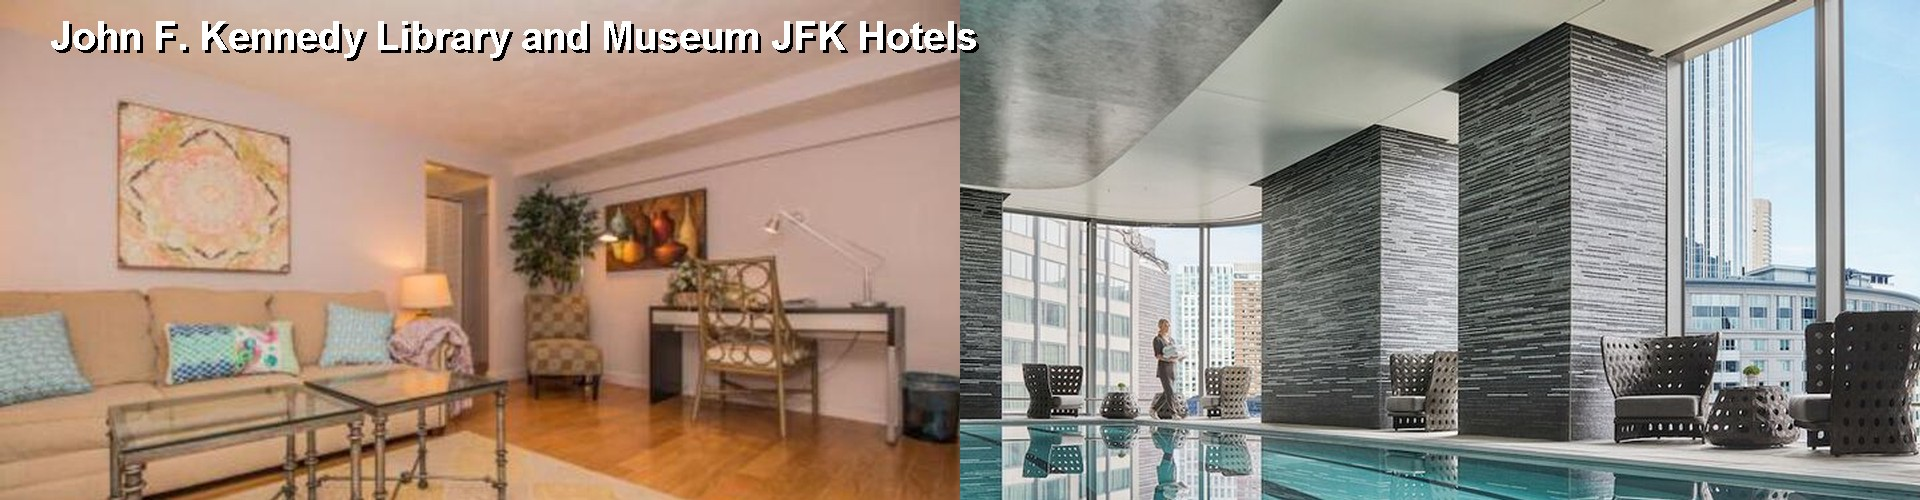 5 Best Hotels near John F. Kennedy Library and Museum JFK